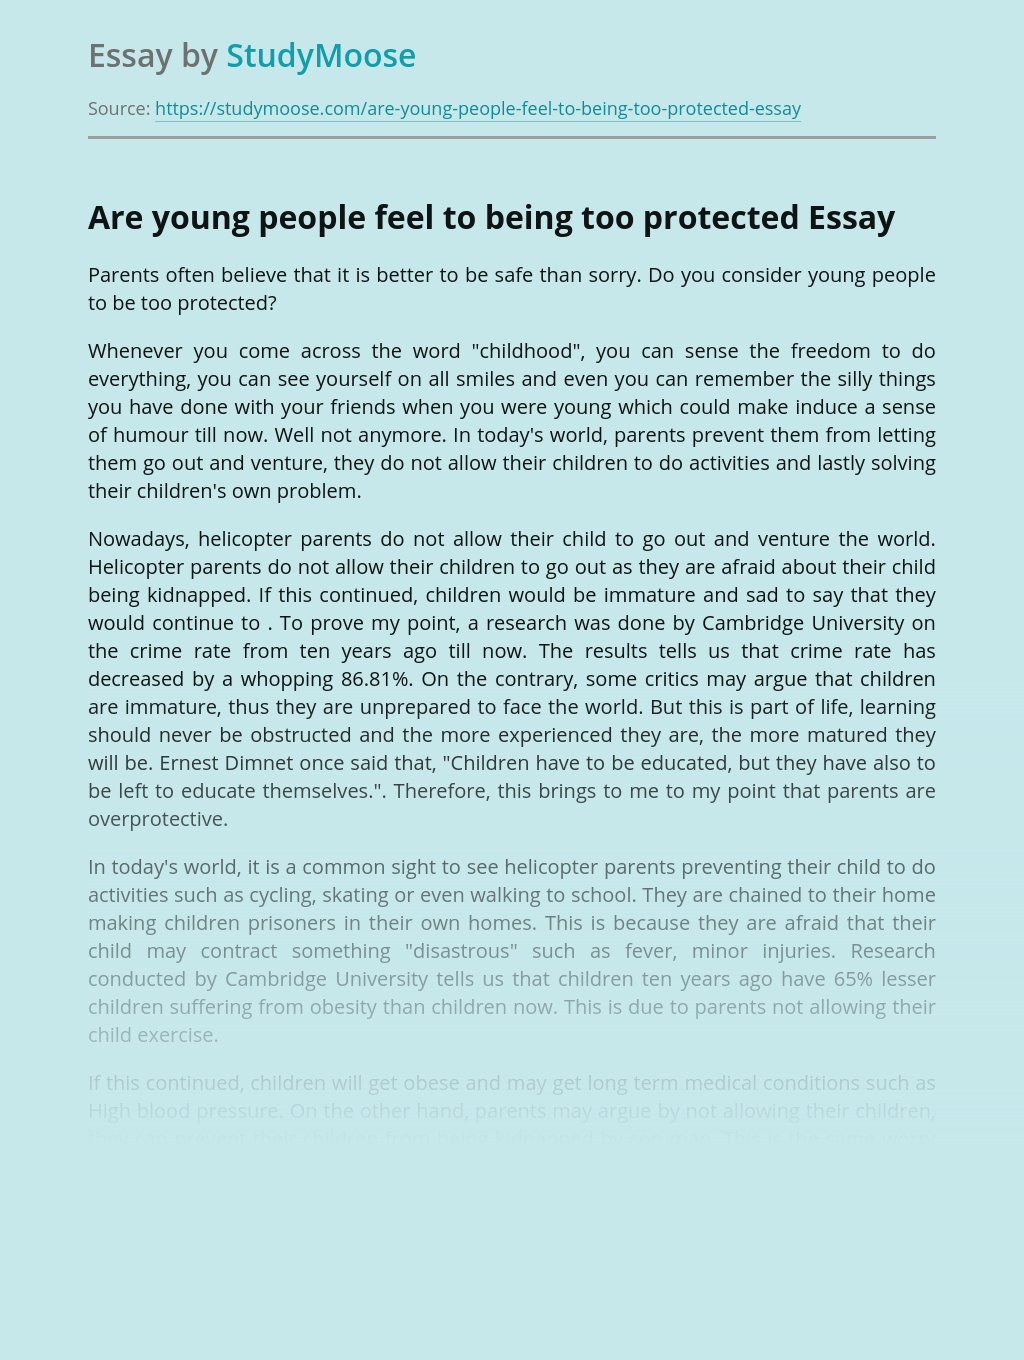 Are young people feel to being too protected